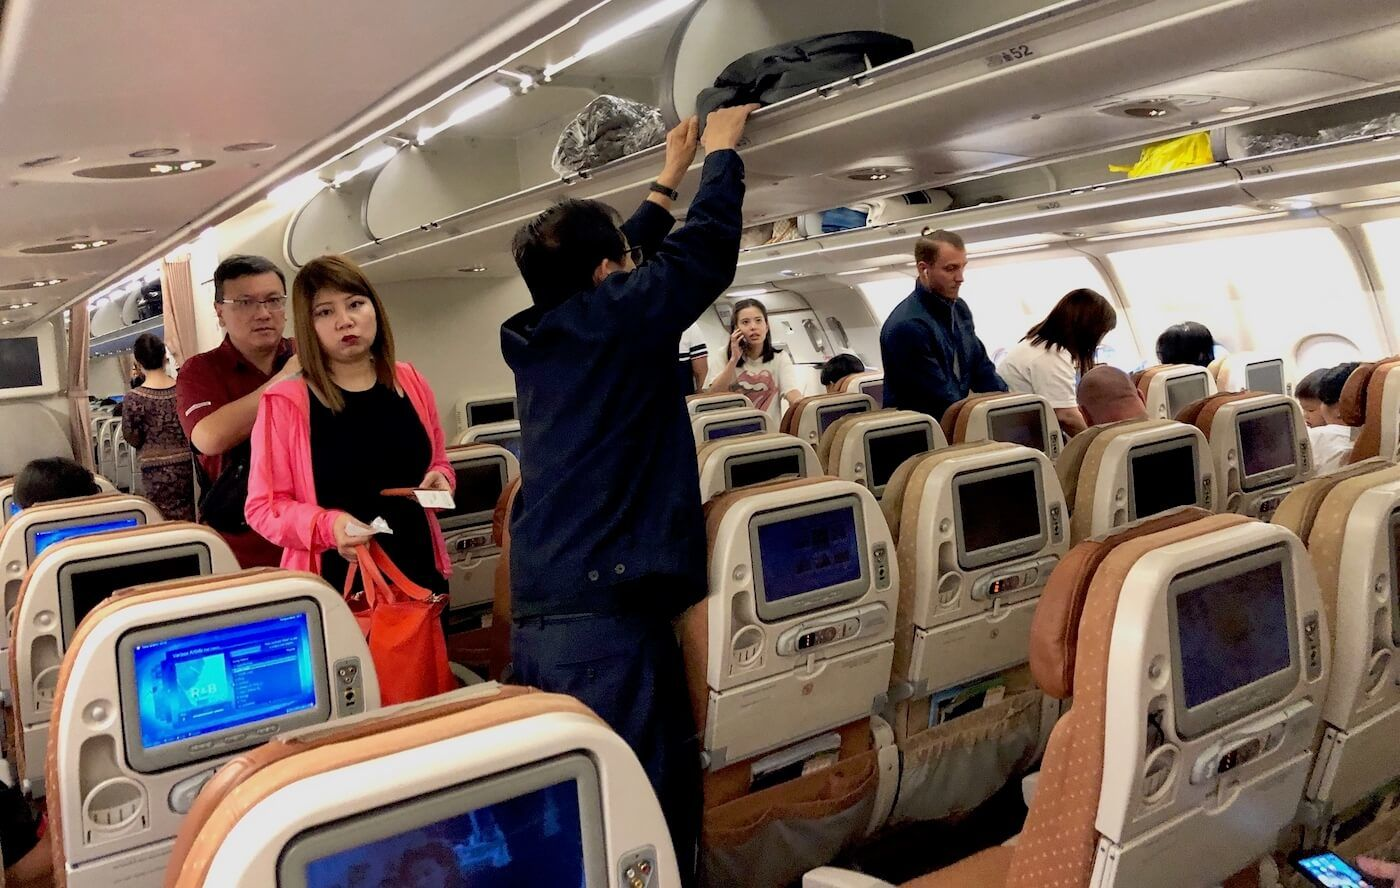 Singapore Airlines A330 Economy